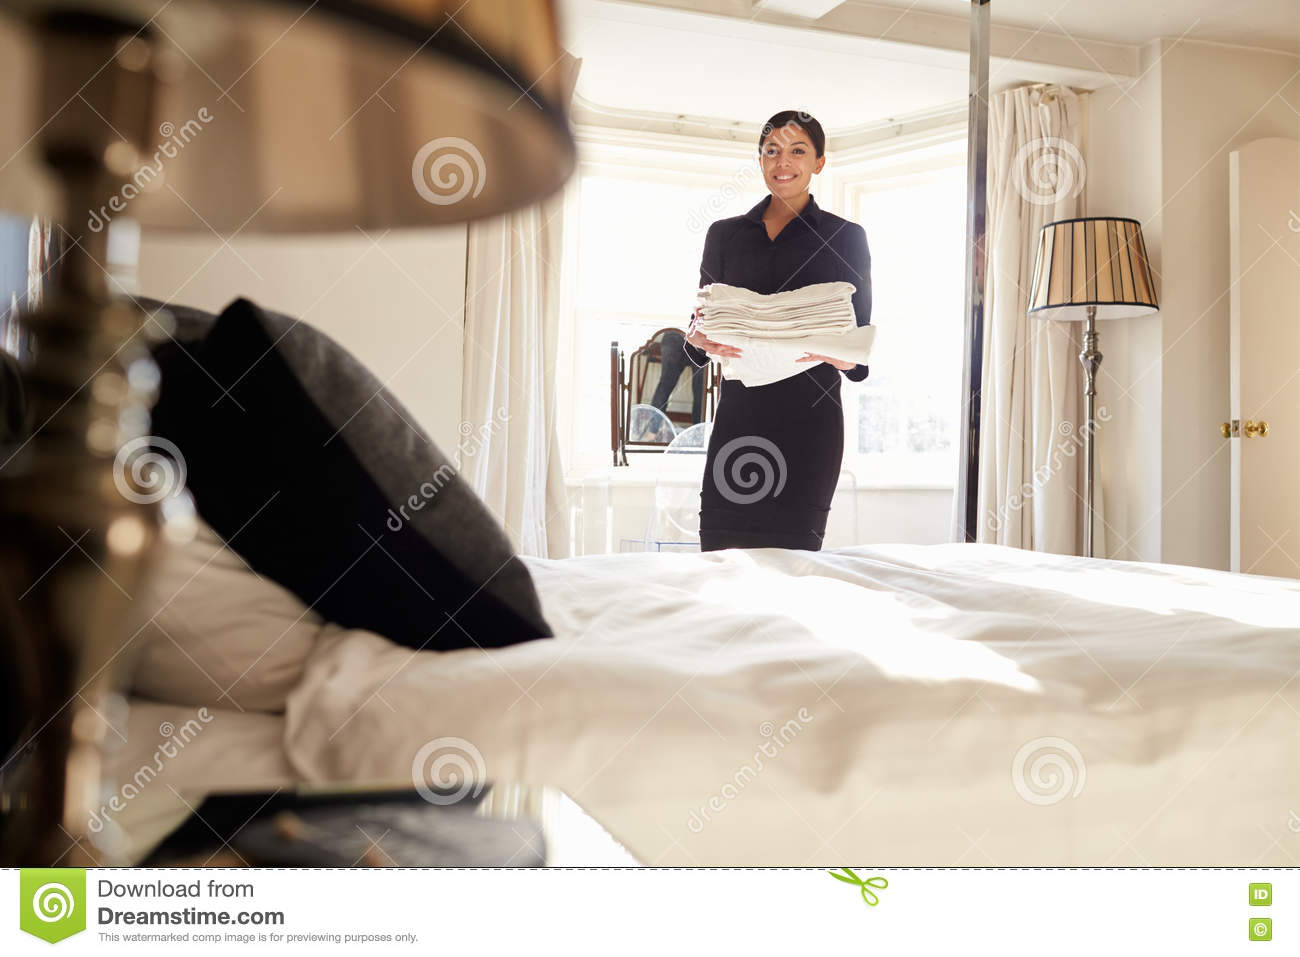 low angle view of dirty sidewalk closed sign stock photo 87629574. Black Bedroom Furniture Sets. Home Design Ideas